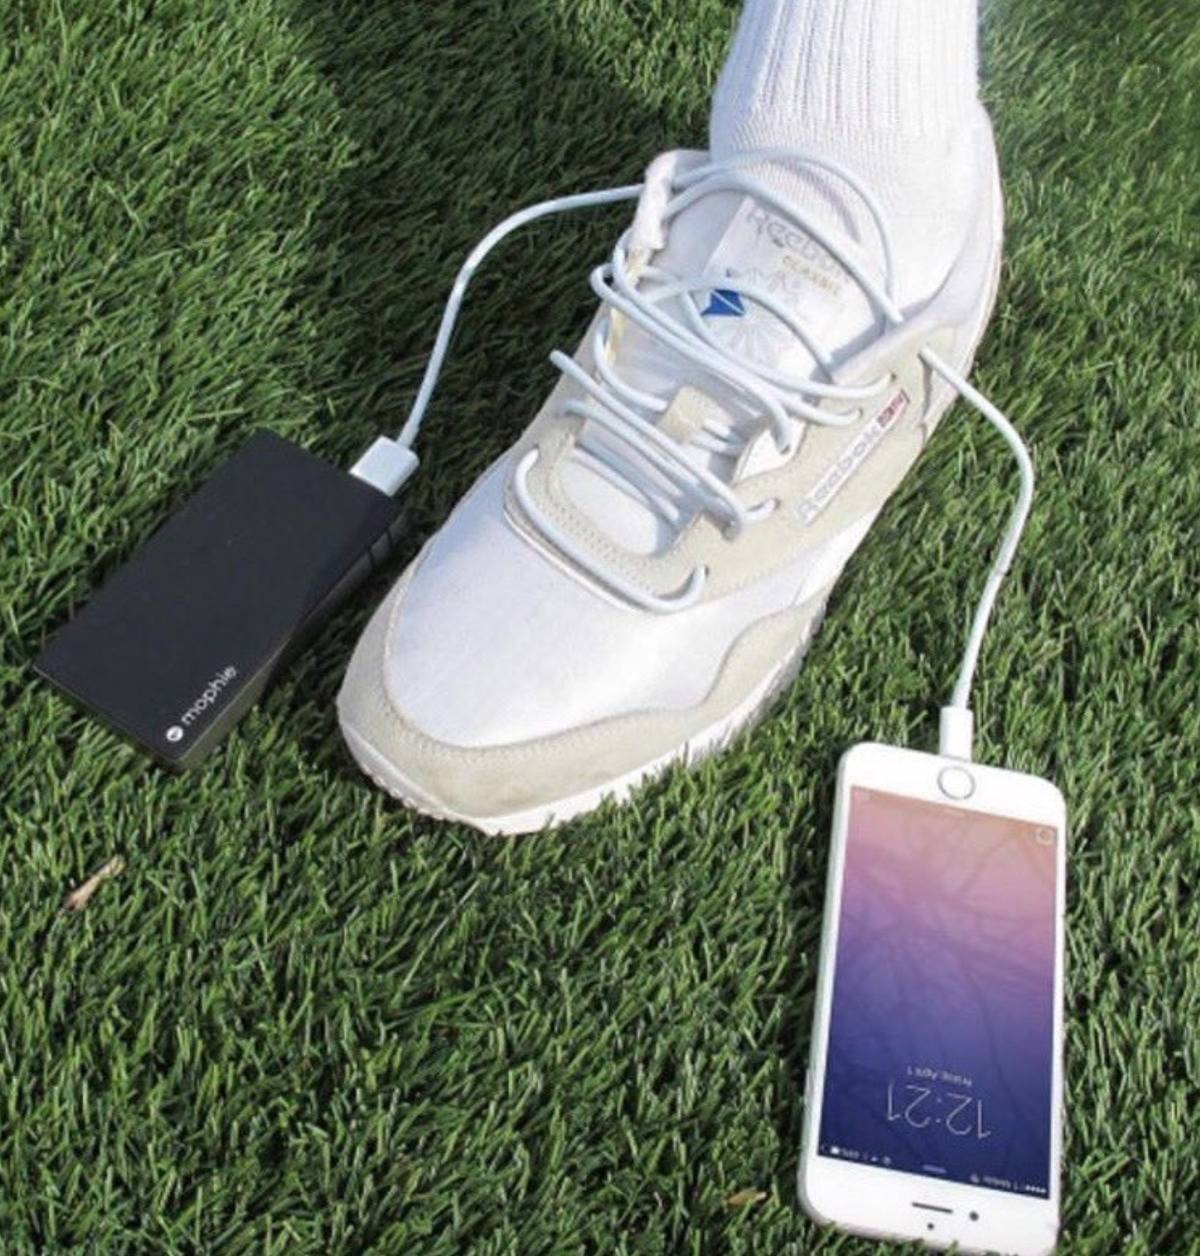 someone with a phone cord as a shoelace. One side is plugged into a phone and the other is plugged into a portable charger